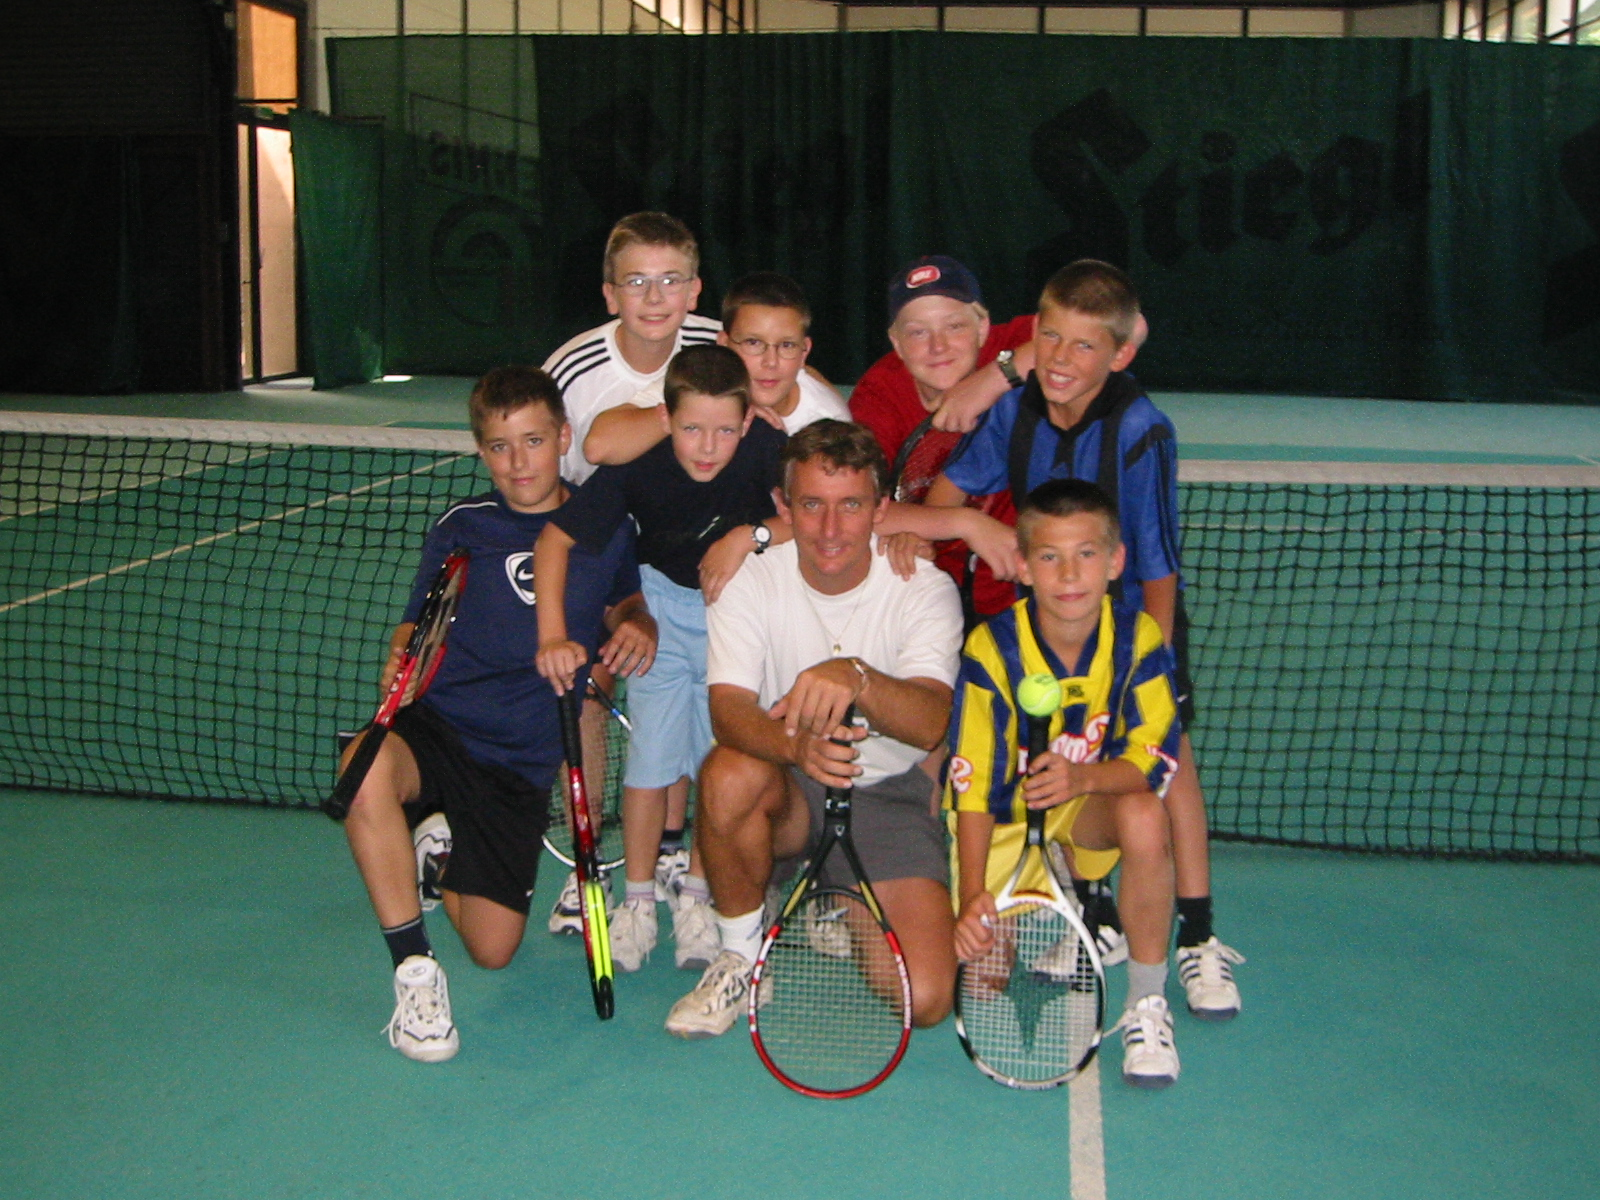 Tenniscamp Wien